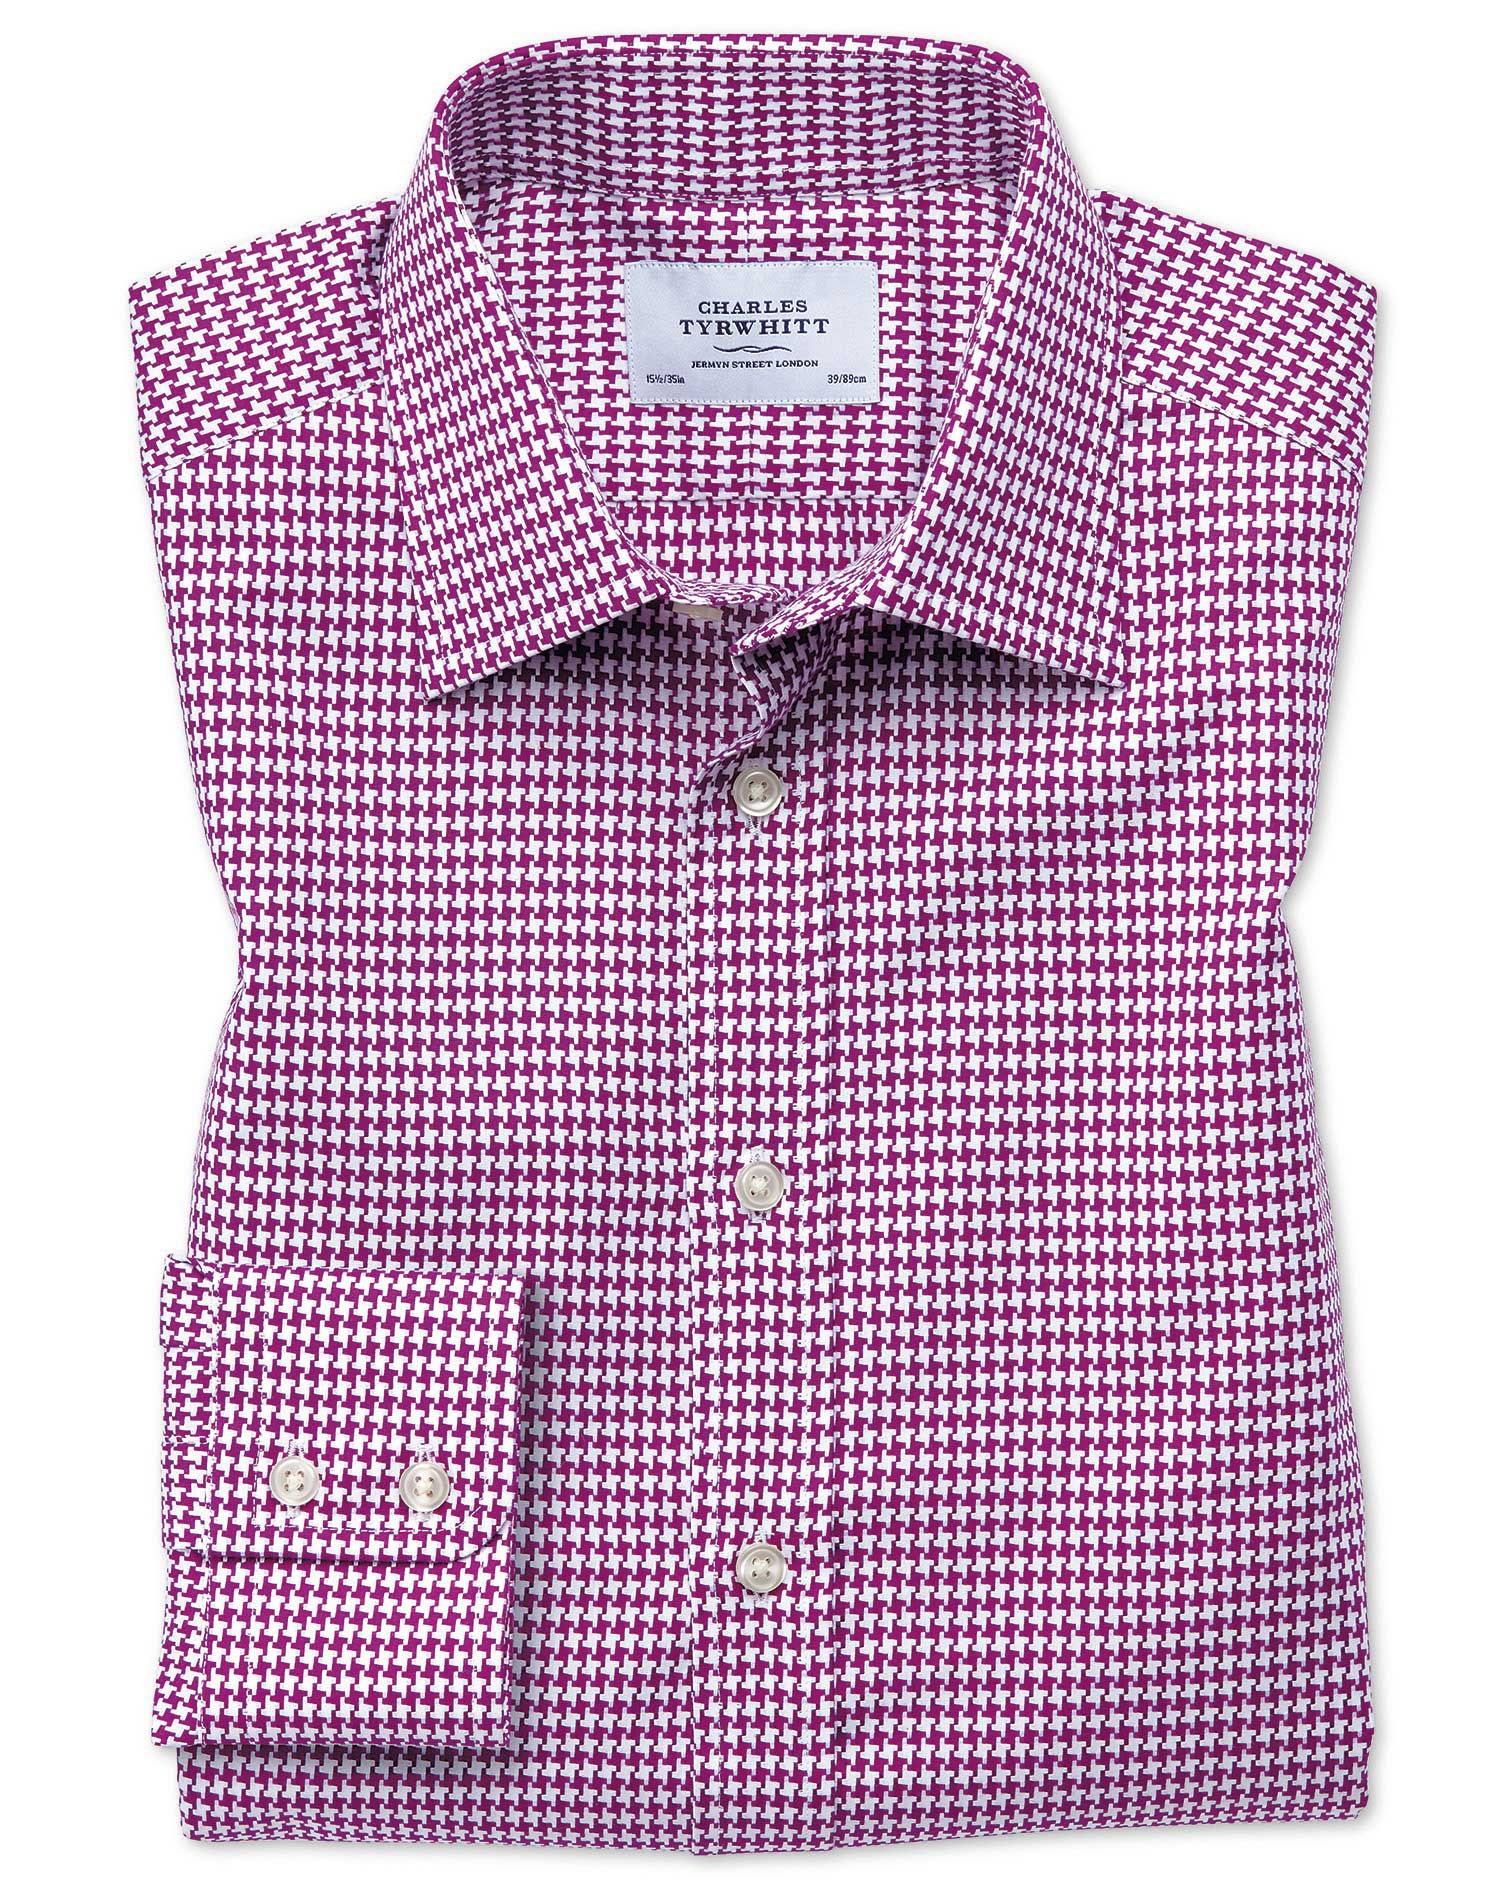 Classic Fit Large Puppytooth Berry Cotton Formal Shirt Single Cuff Size 16/35 by Charles Tyrwhitt